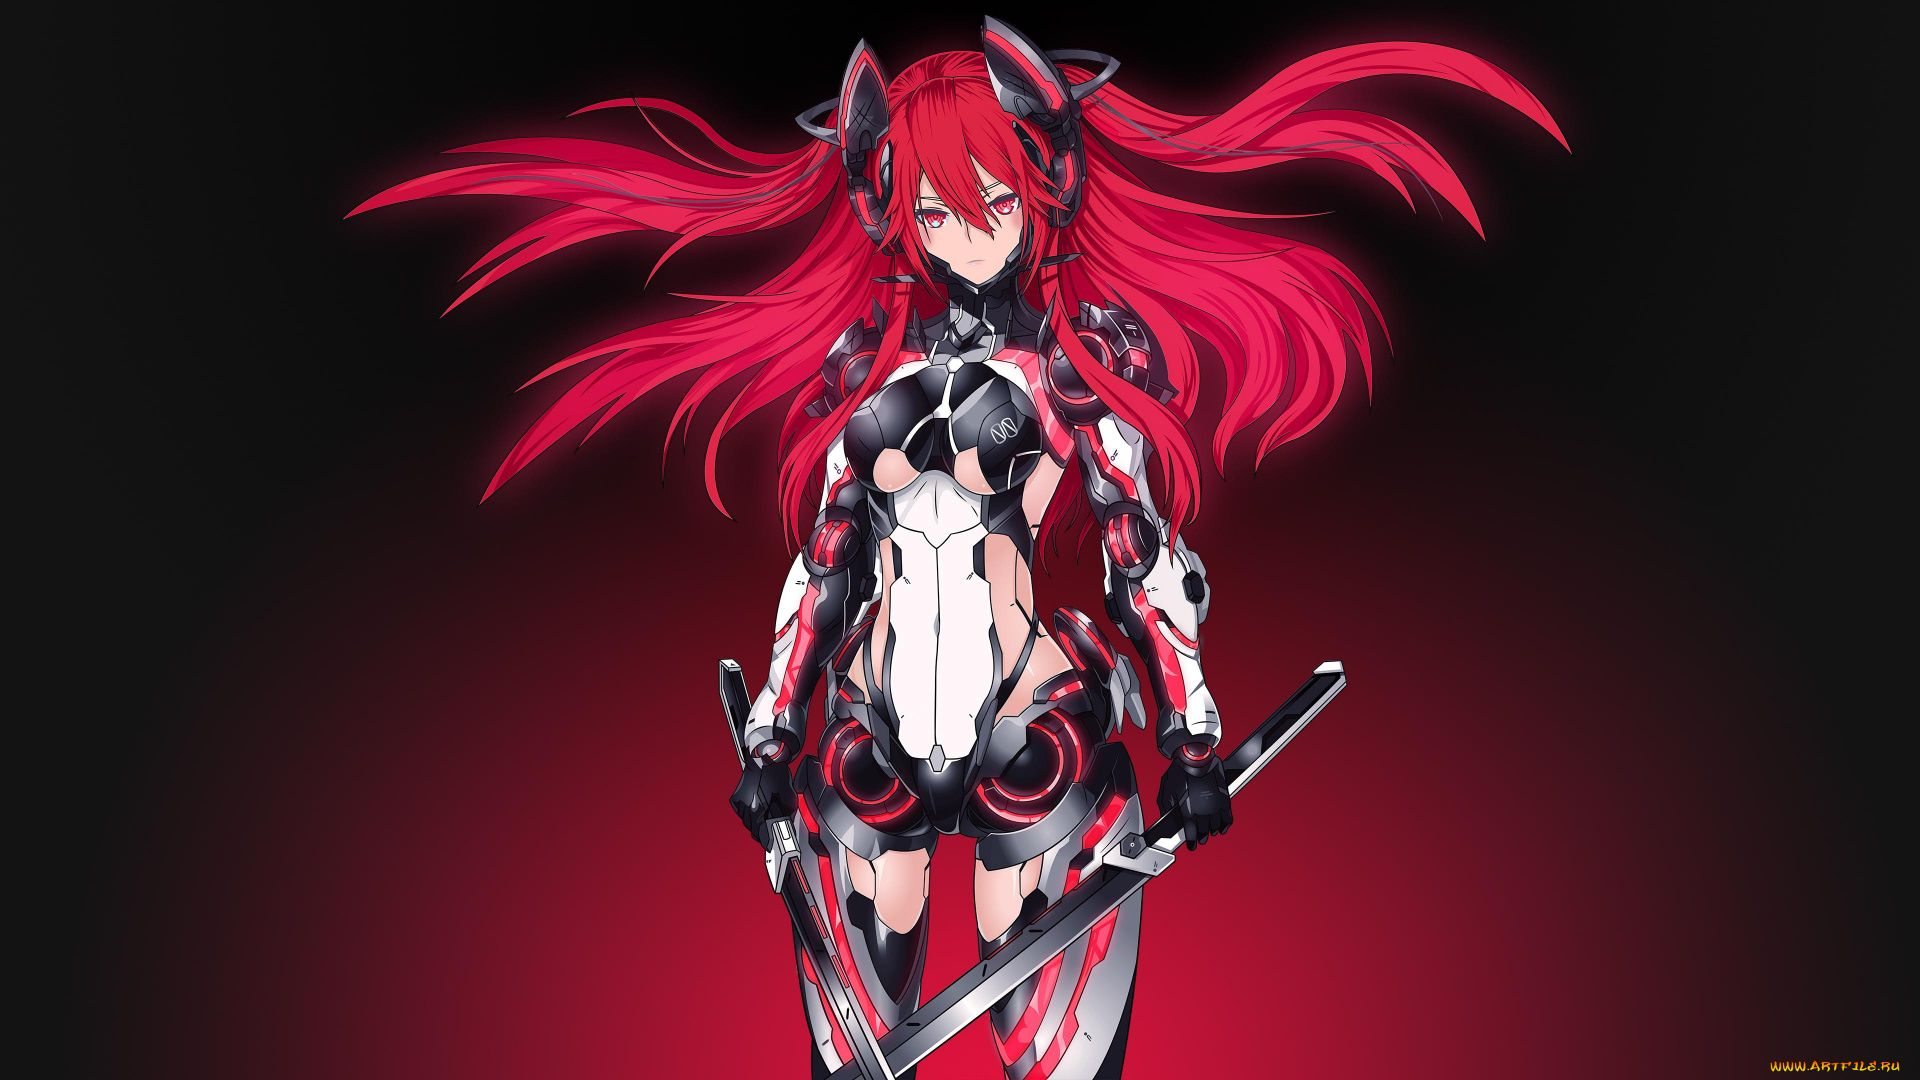 Anime Wallpapers Red